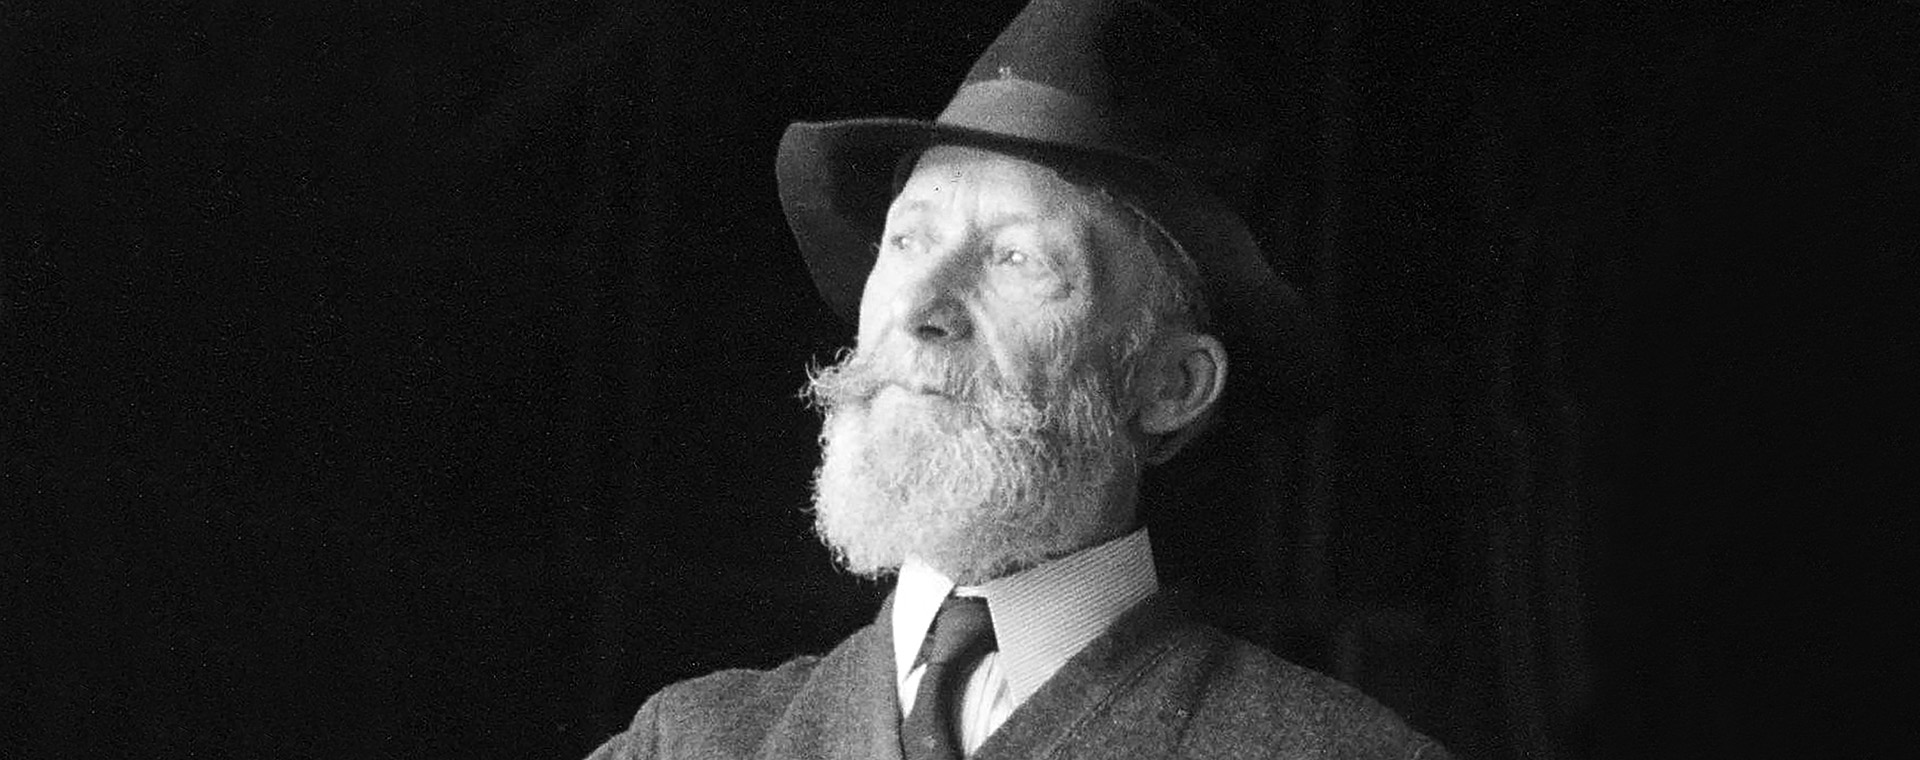 Black and white photograph of Ozias Leduc, sitting, aged 70 to 75. He wears a hat and has a beard. He has his left hand in his trouser pocket.